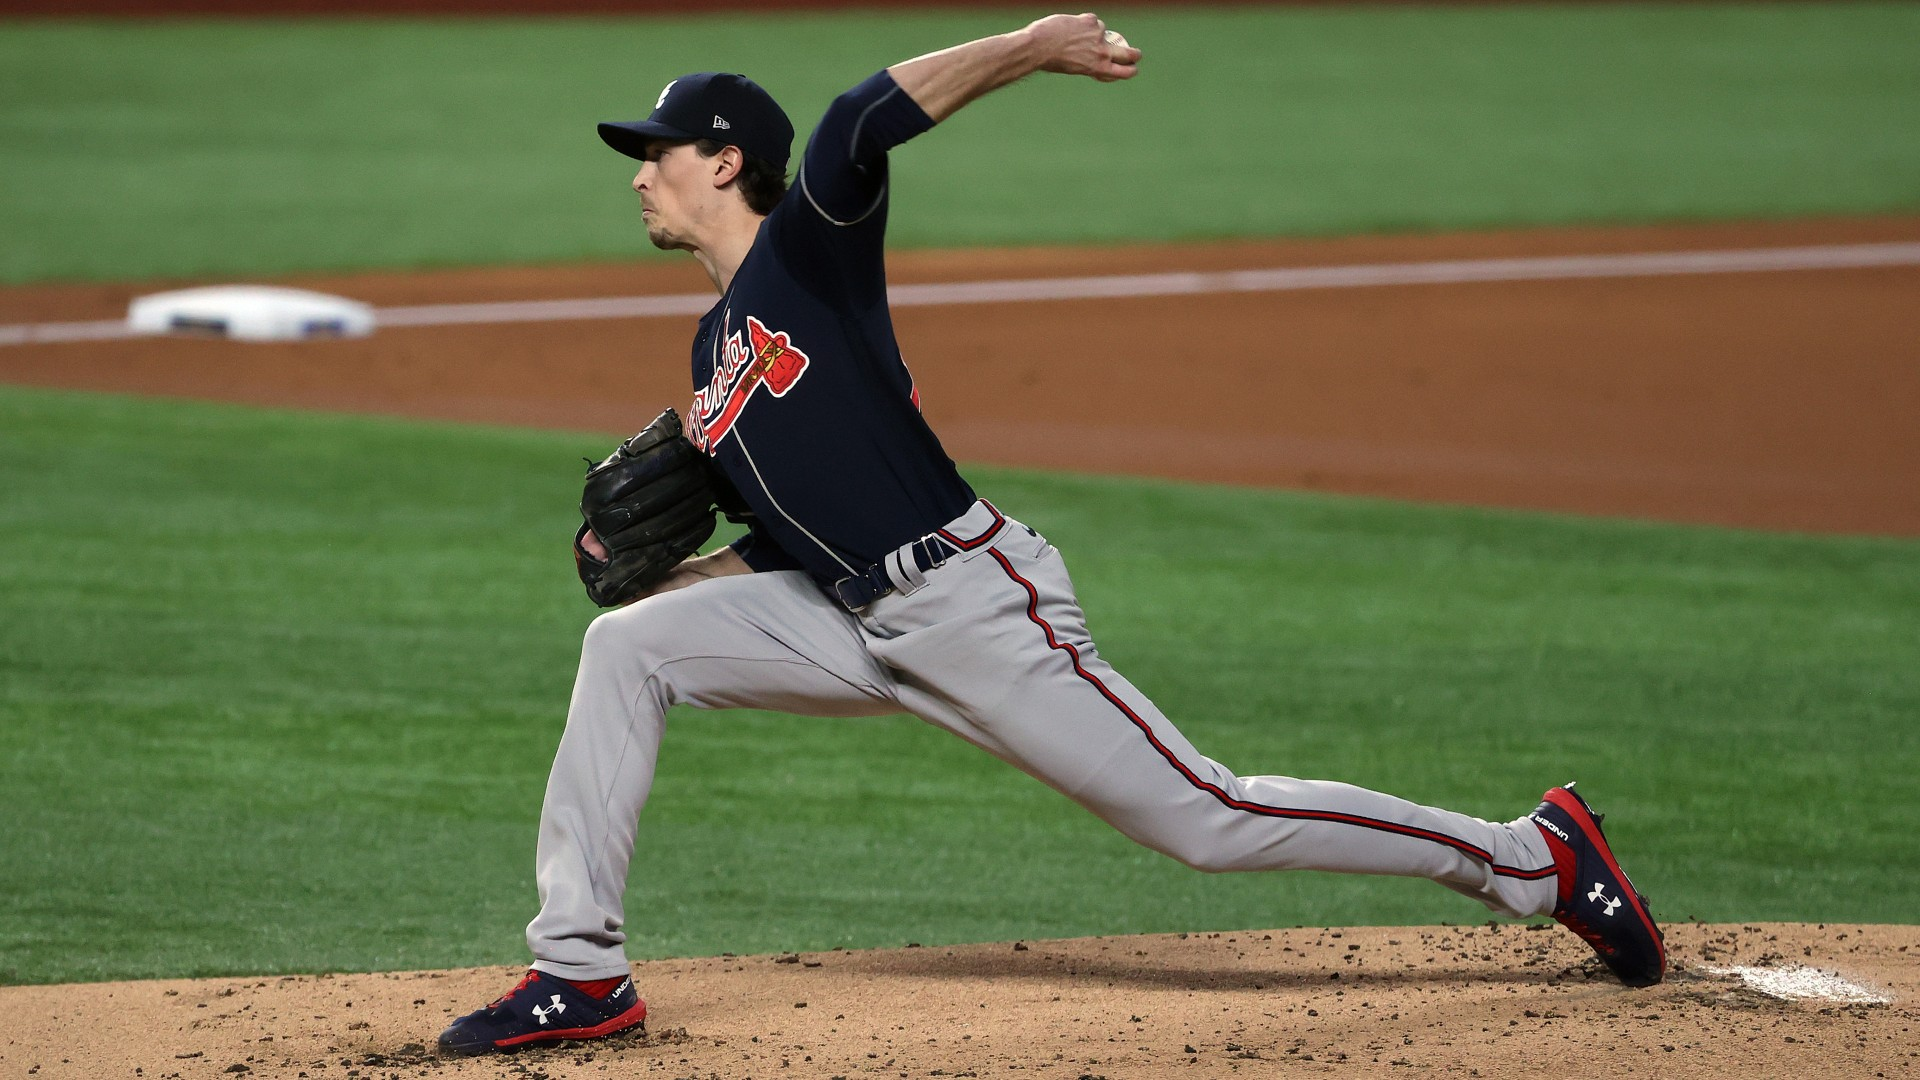 Max Fried's Game 1 gem had shades of another Braves lefty's NLCS brilliance